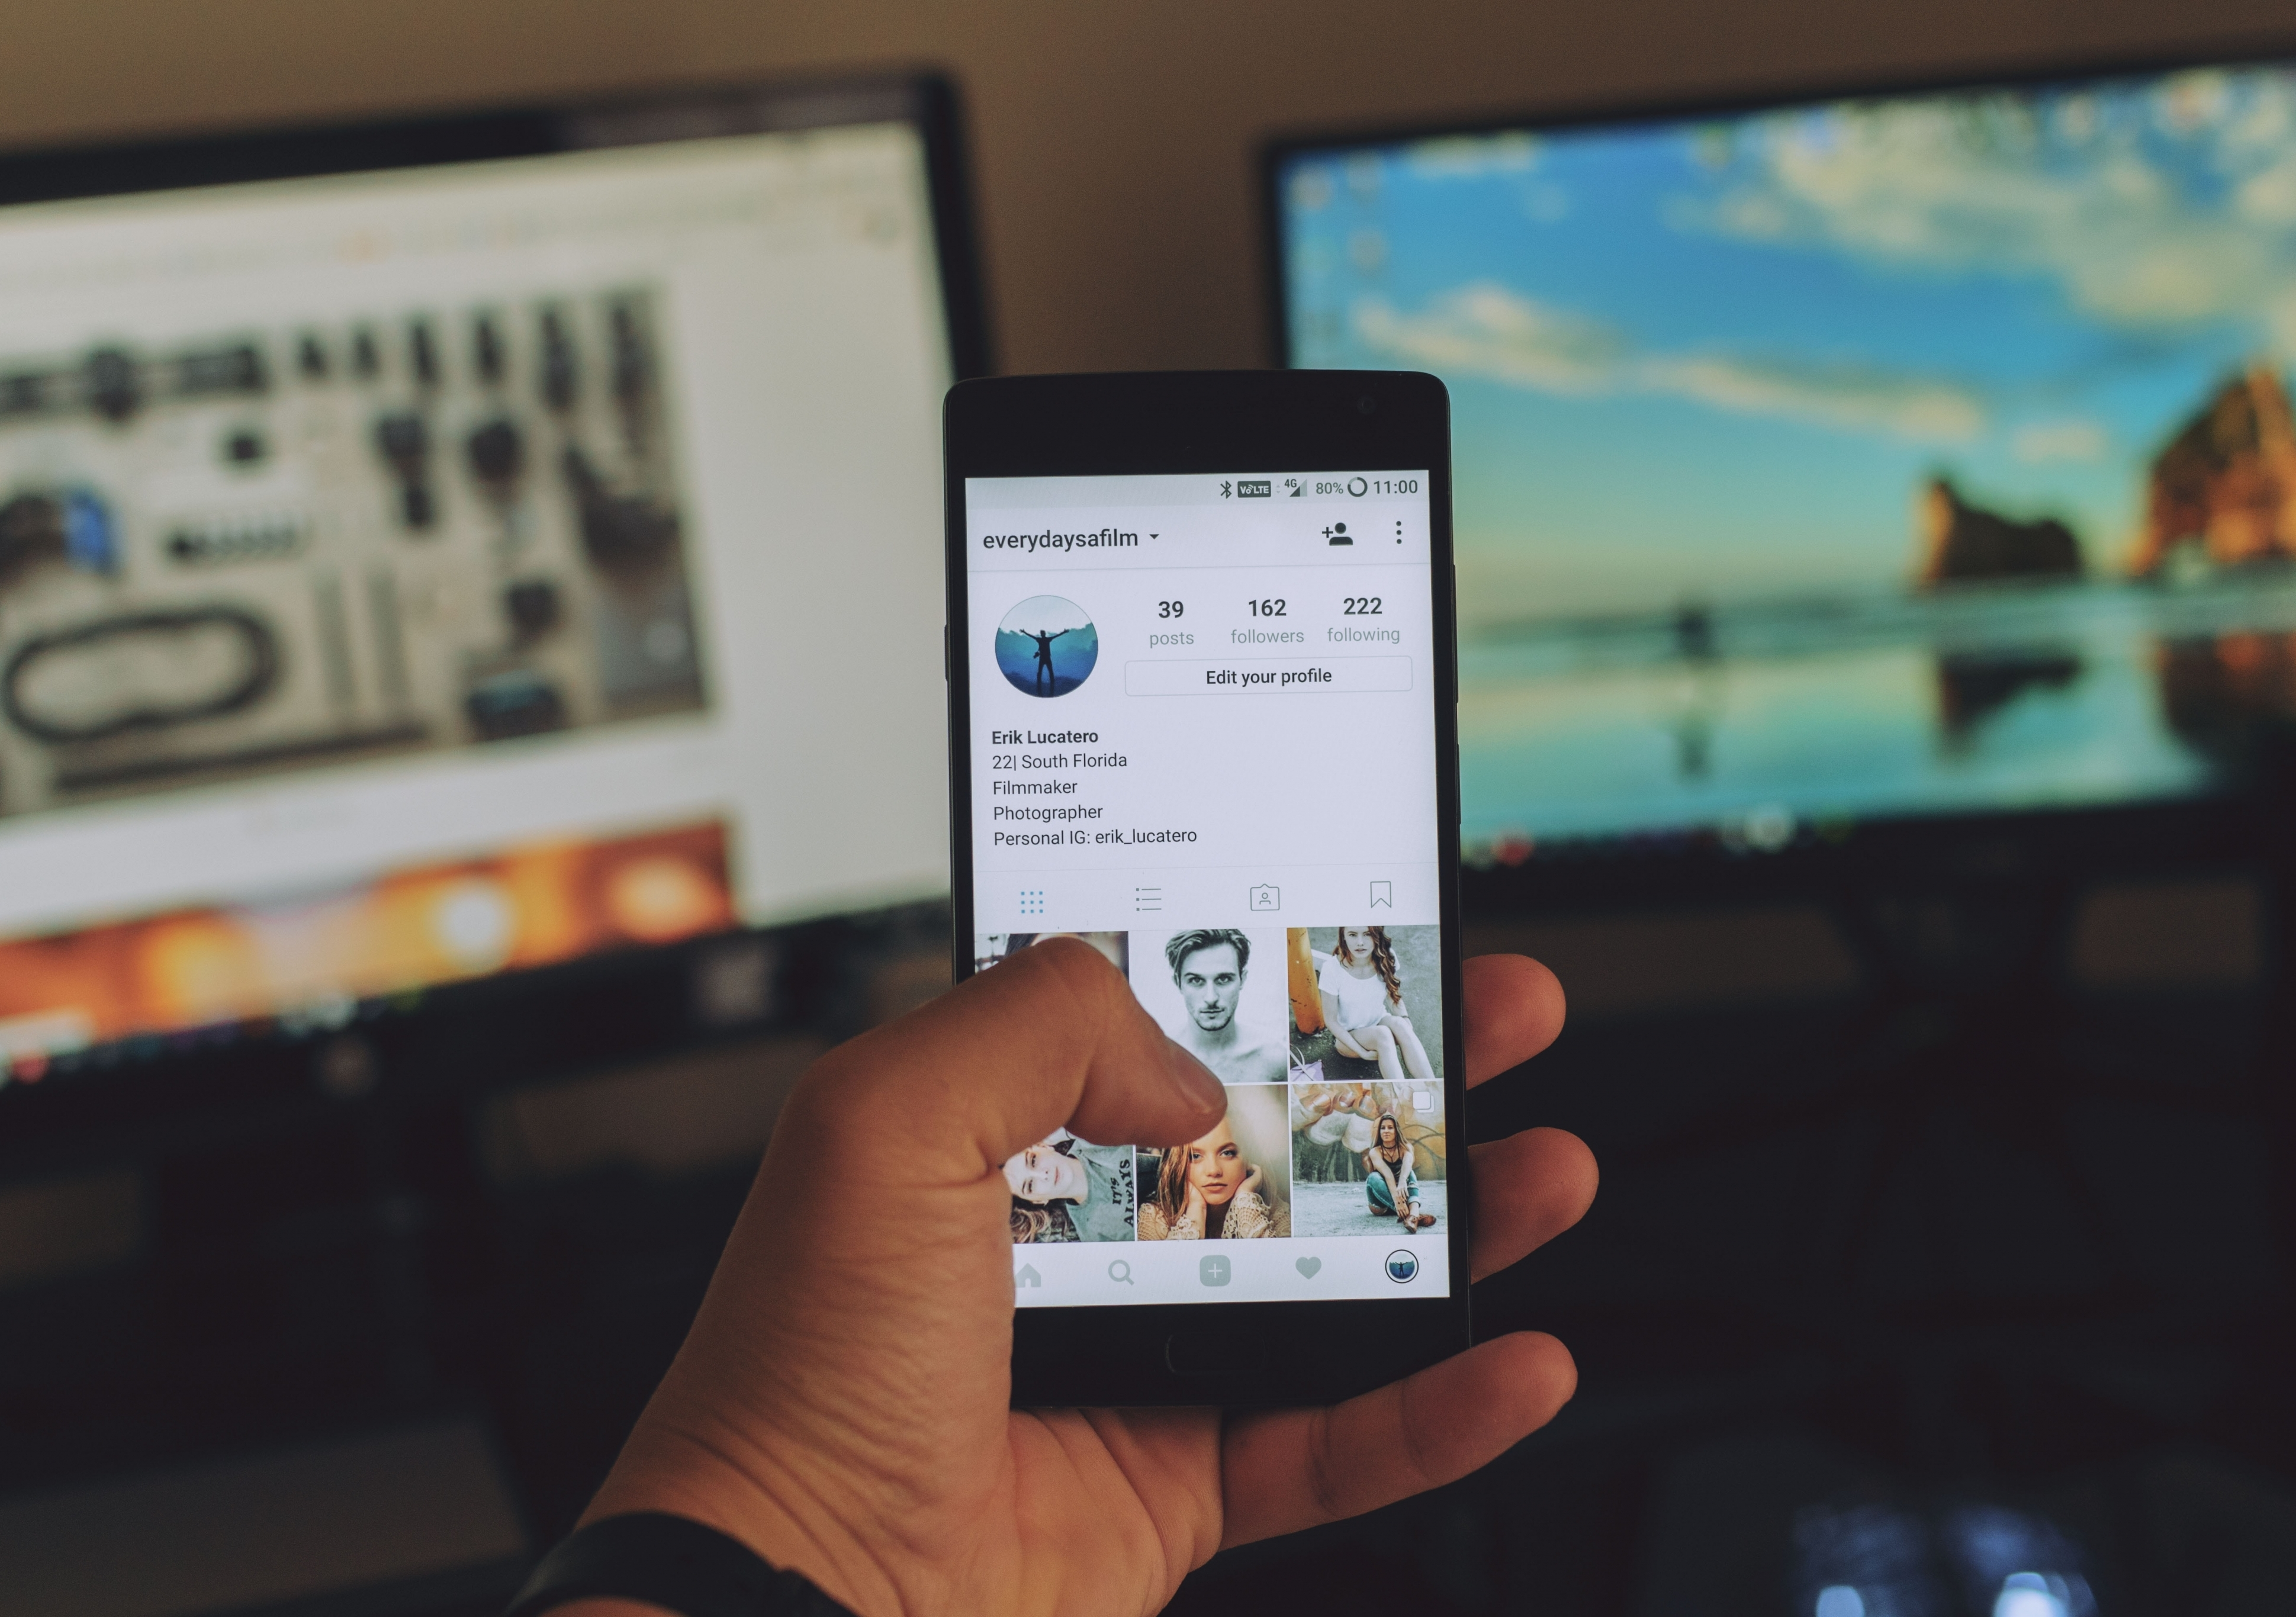 When people upload their images online, their use is regulated by the social media's contract terms. Image: Unsplash